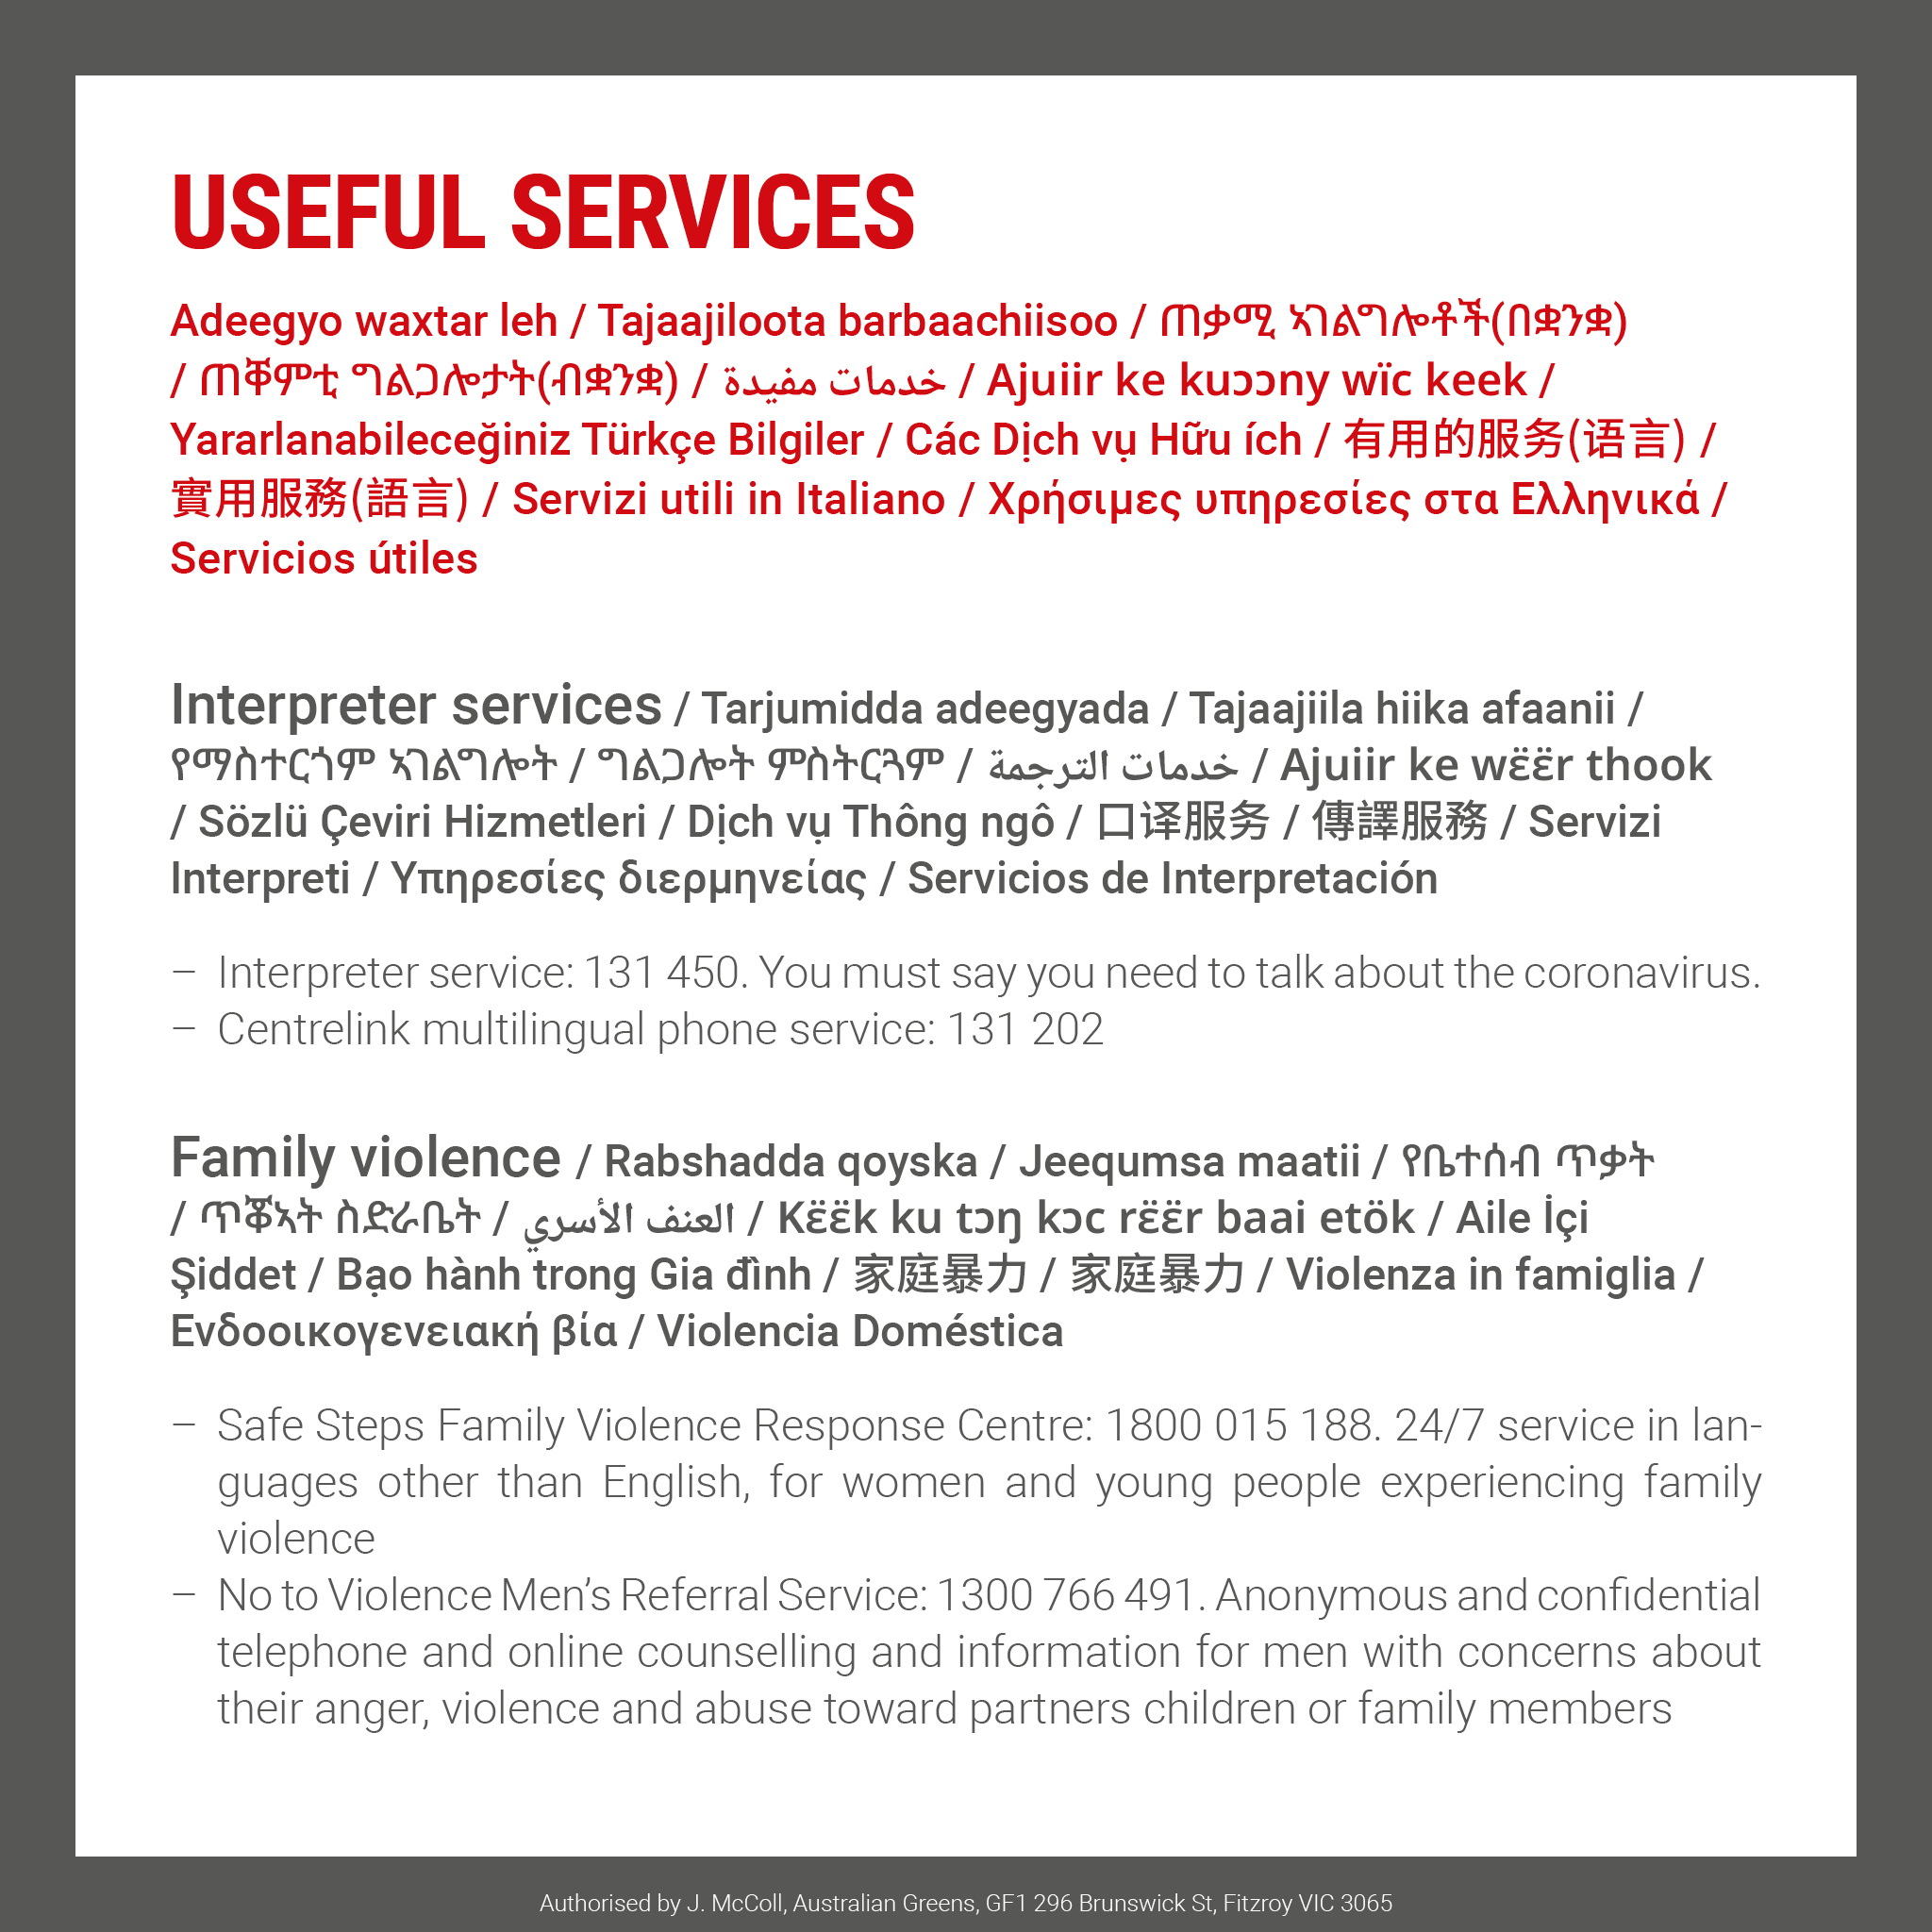 COVID-19 useful services listing - interpreter services and family violence services. For full text, please refer to the PDFs linked in the next section